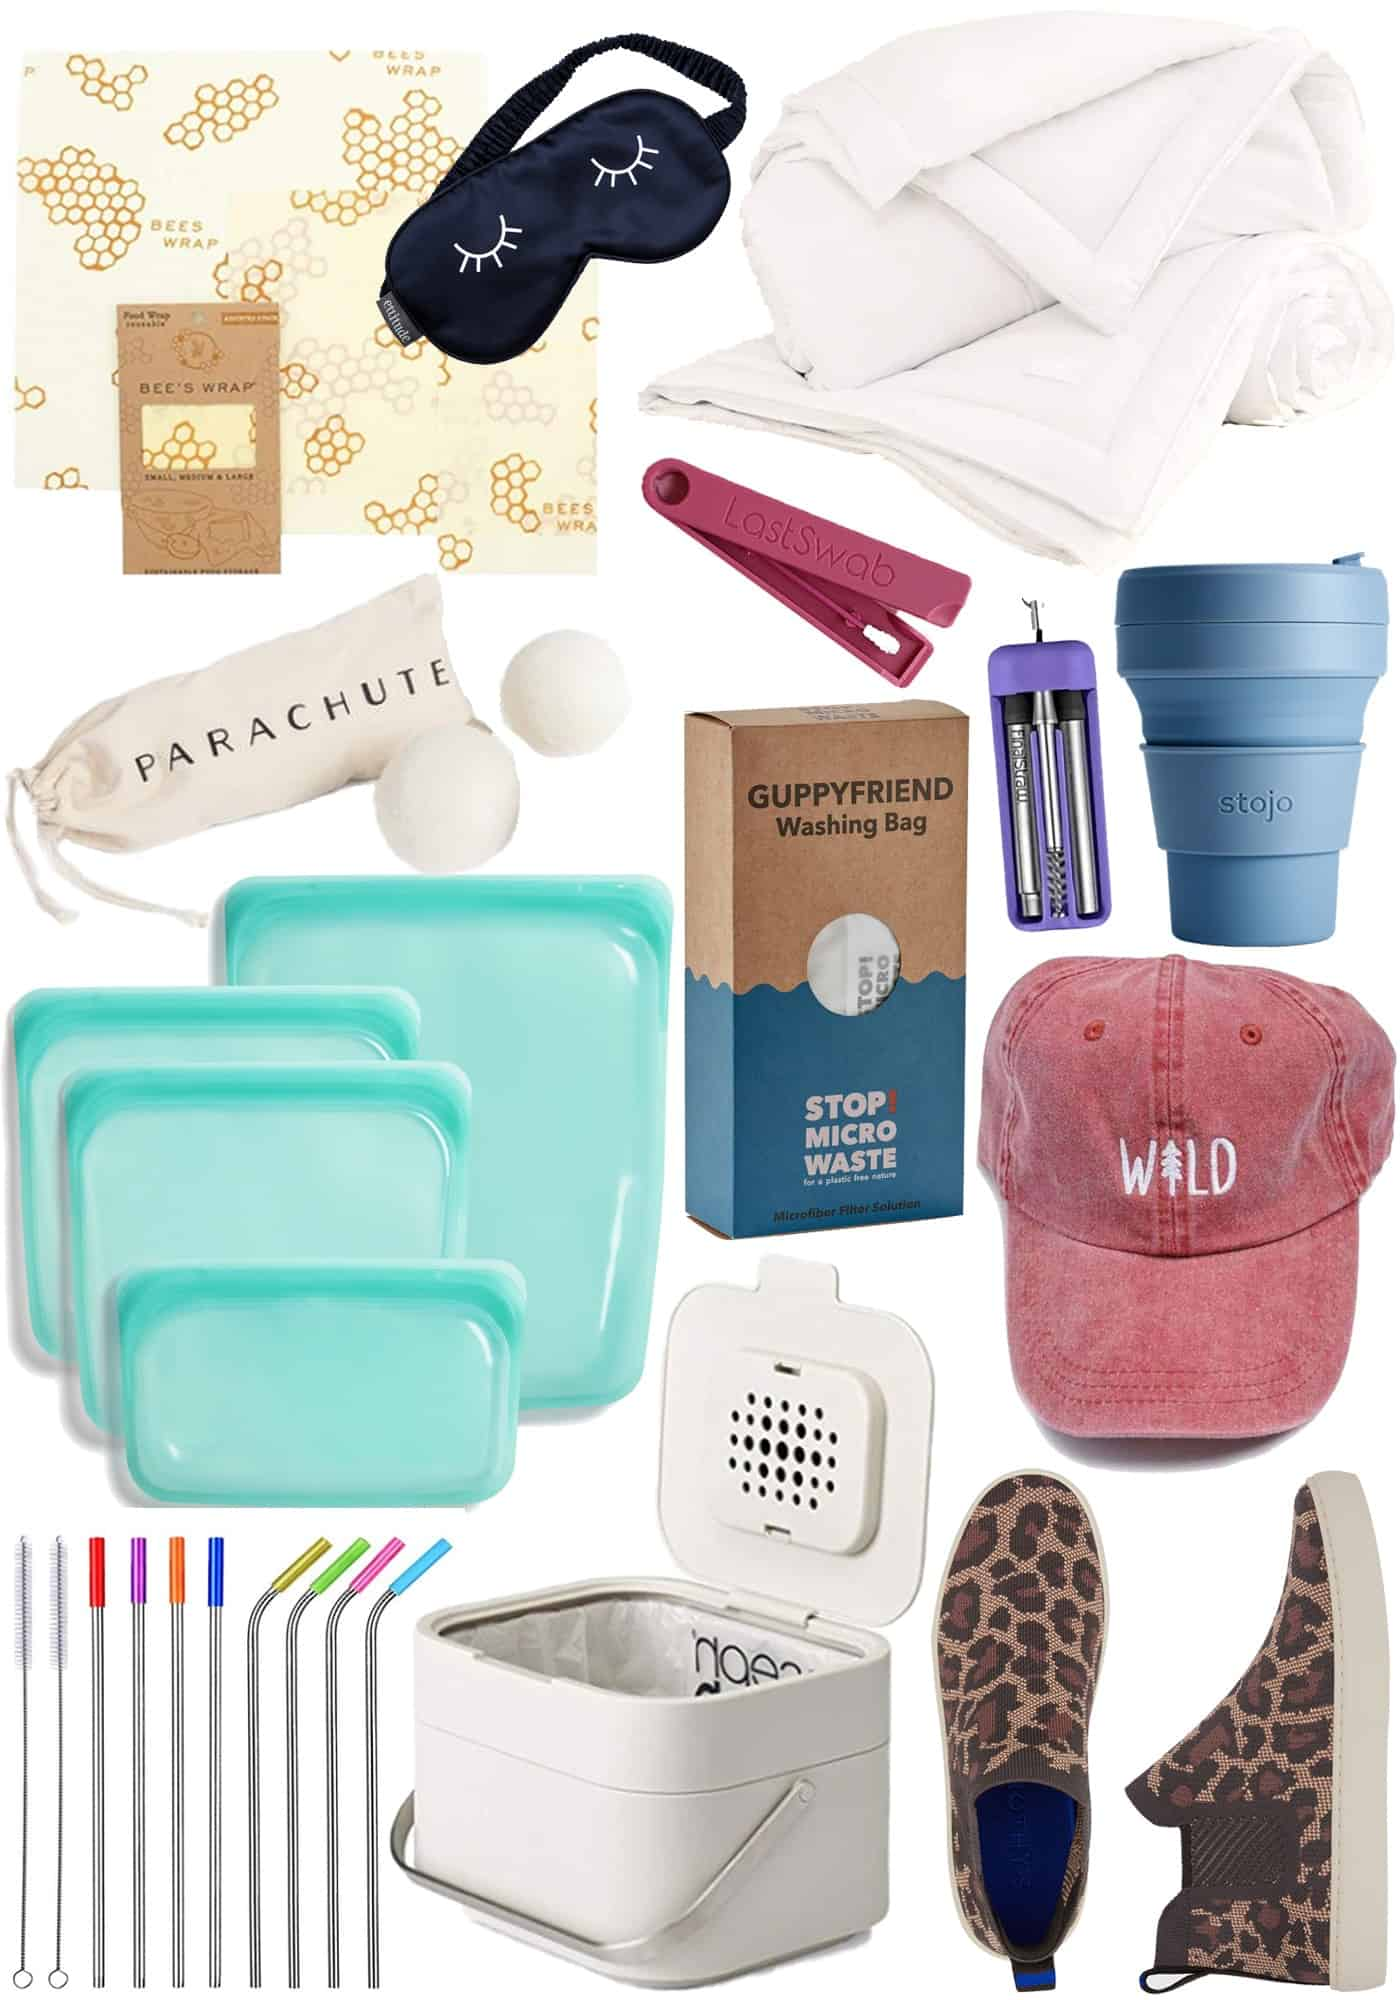 Going green gift guide - ethical and sustainable gift ideas